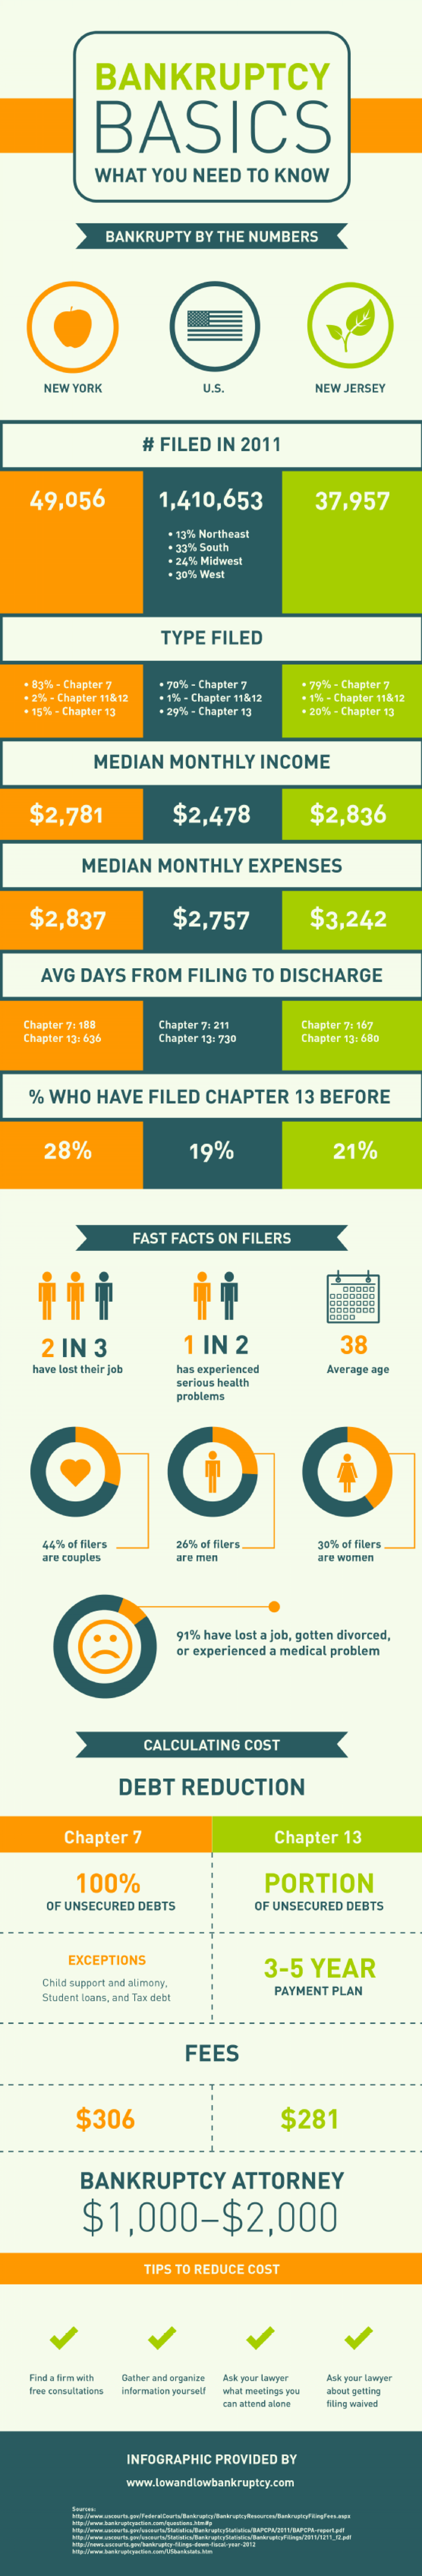 What You Need to Know About Bankruptcy  Infographic